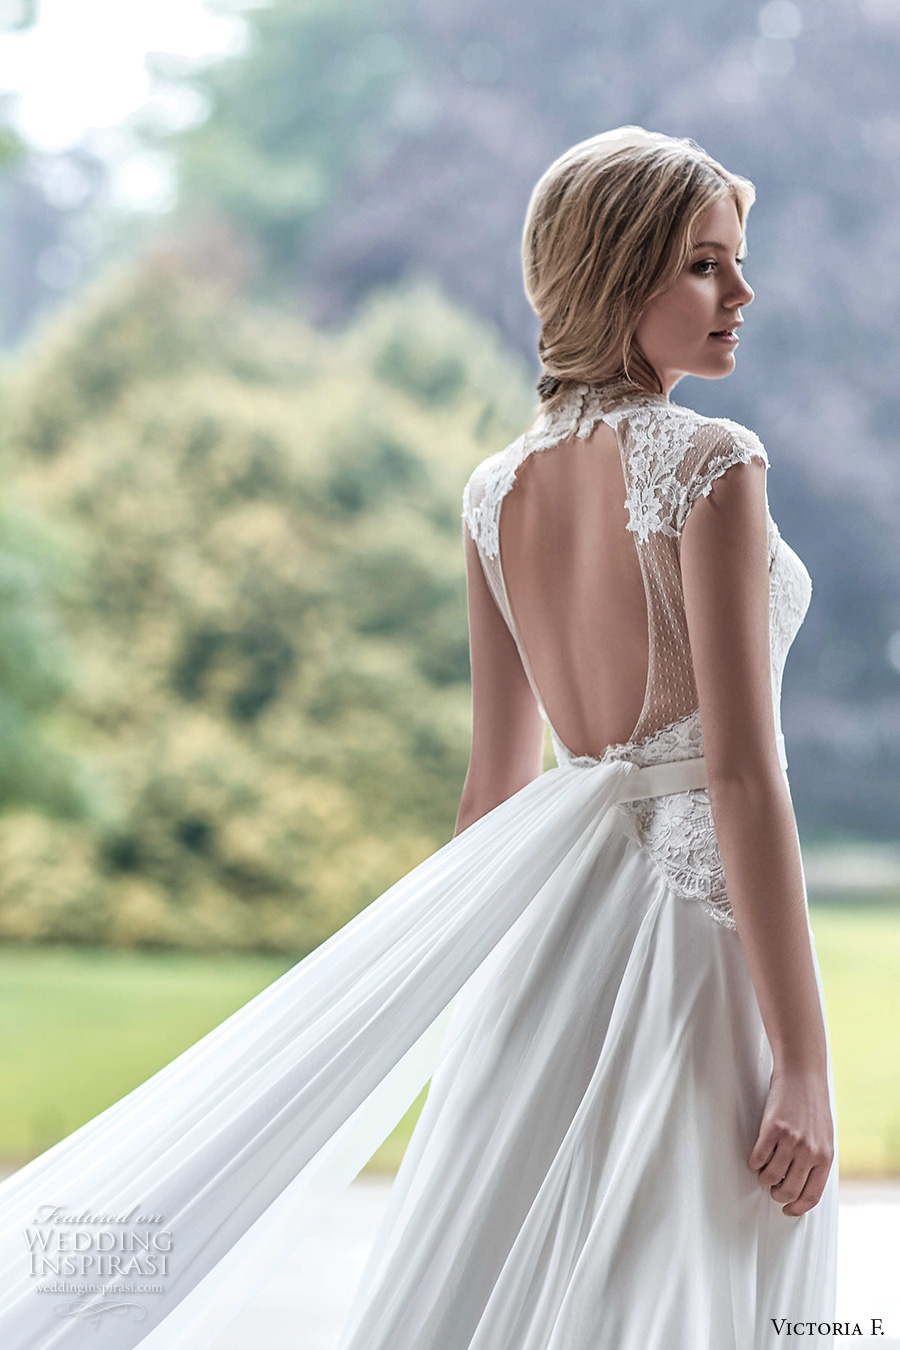 victoria f 2017 bridal cap sleeves high neck a  line wedding dress keyhole back panel train (untitled 09) bv